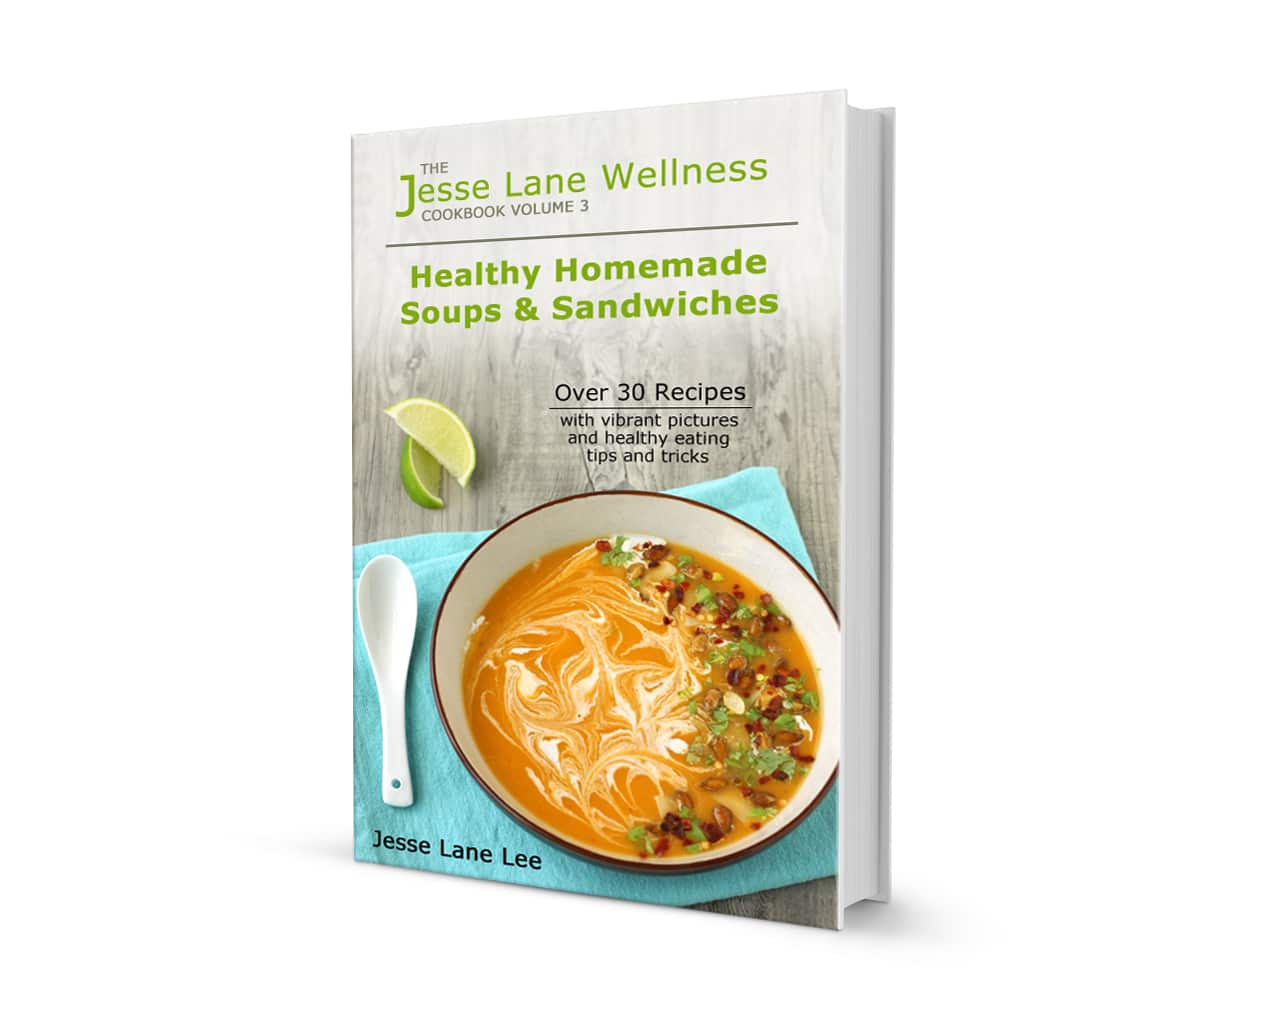 Healthy Homemade Soups and Sandwiches by @jesselwellness #healthysoups #healthysandwiches #cookbook